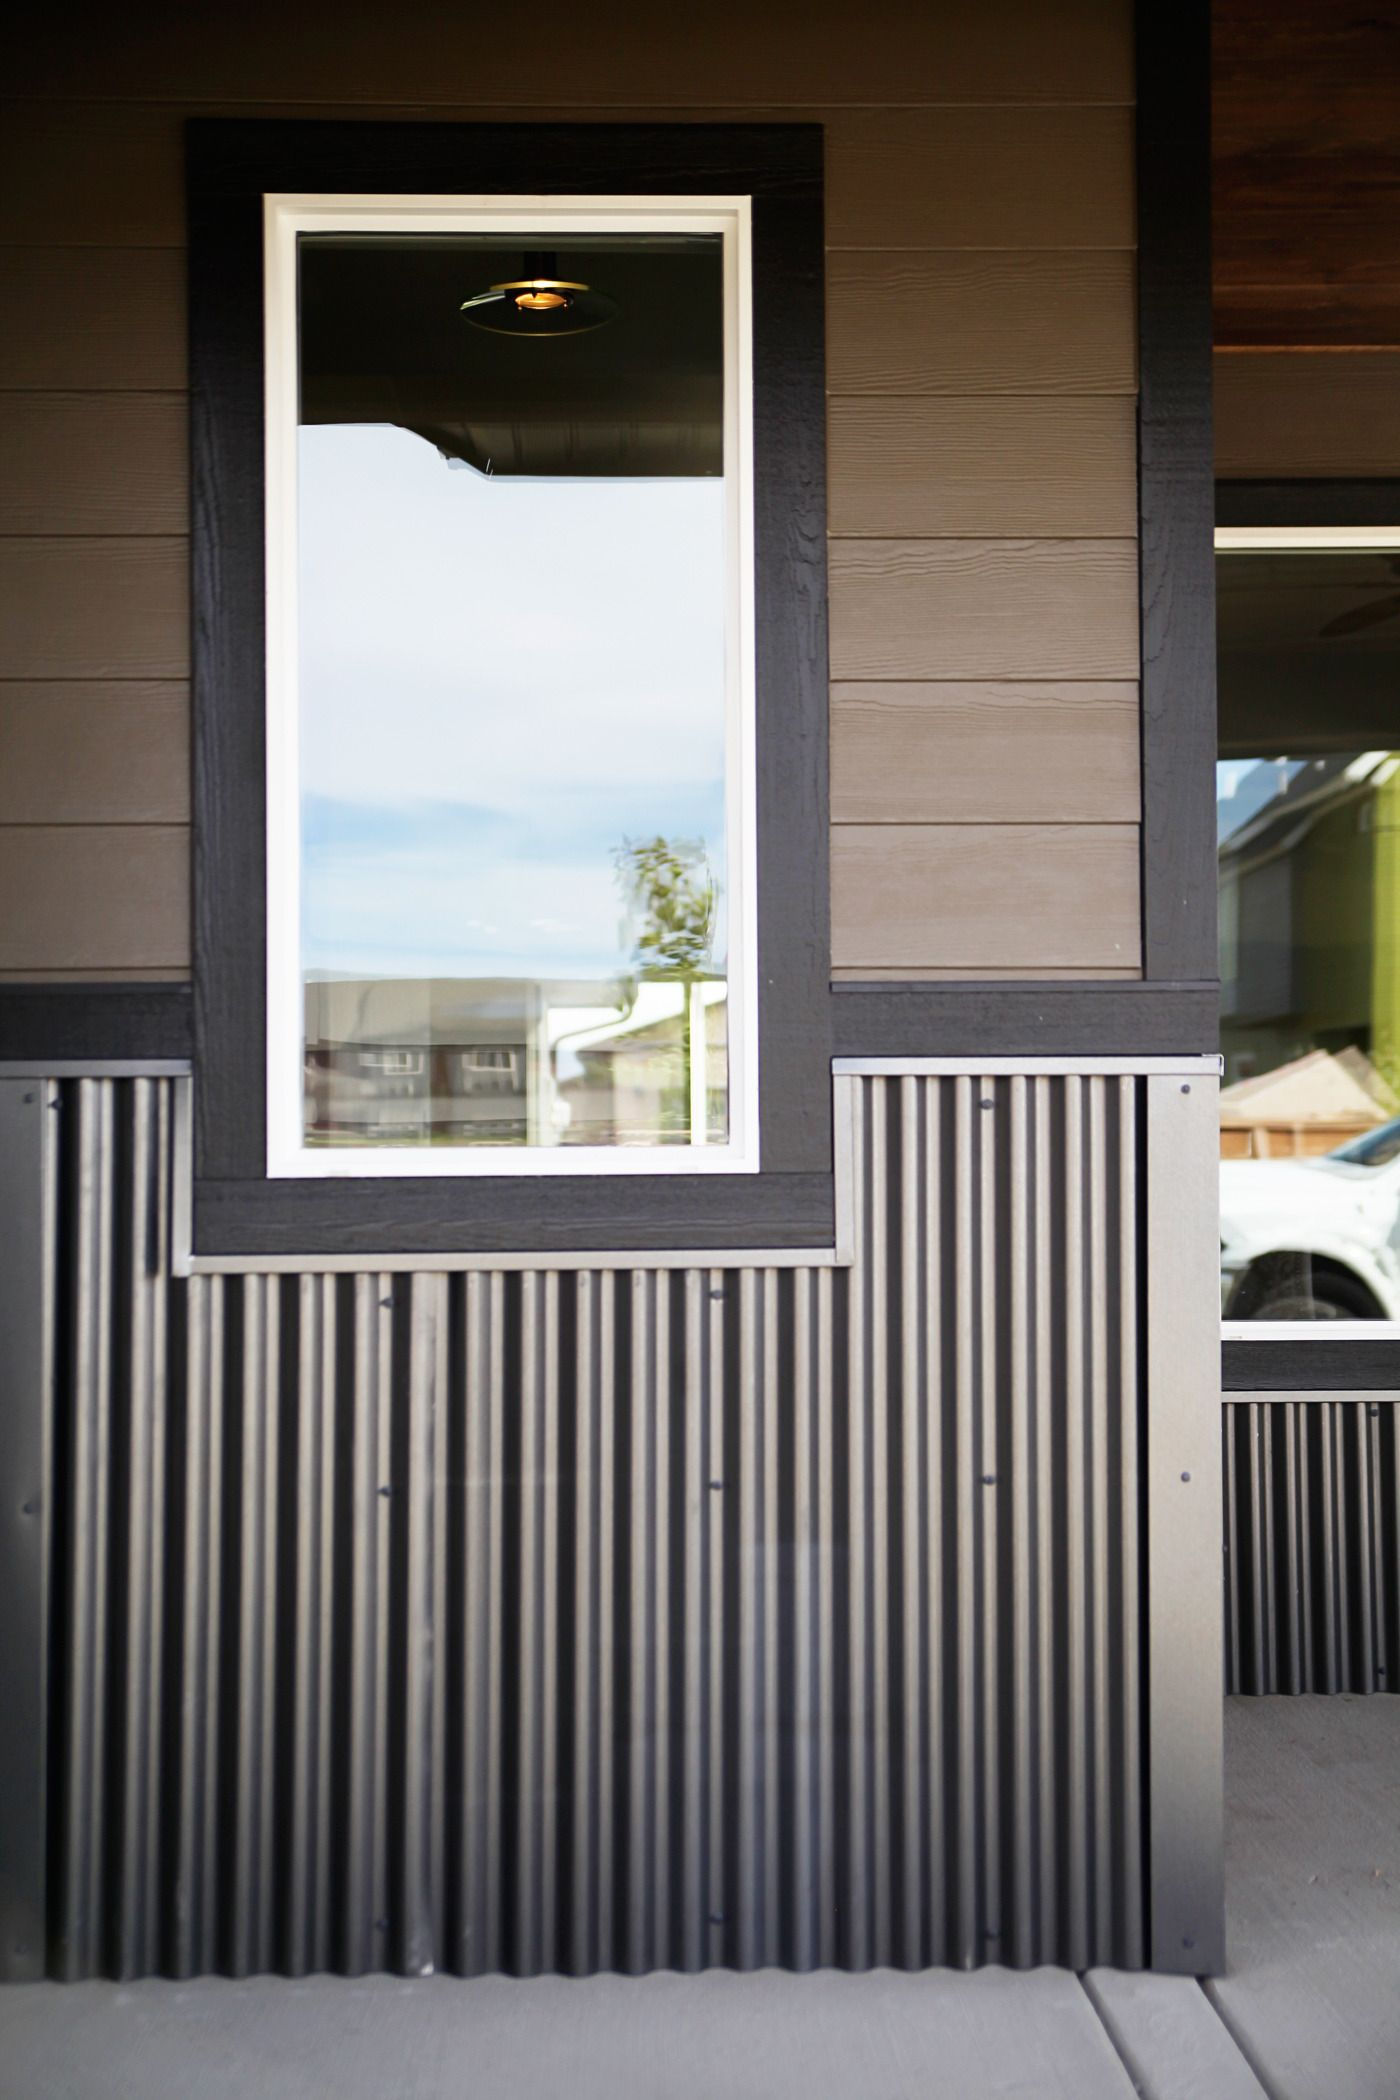 Corrugated Metal Wainscot By Bridger Steel Metal Accents Pinterest Corrugated Metal